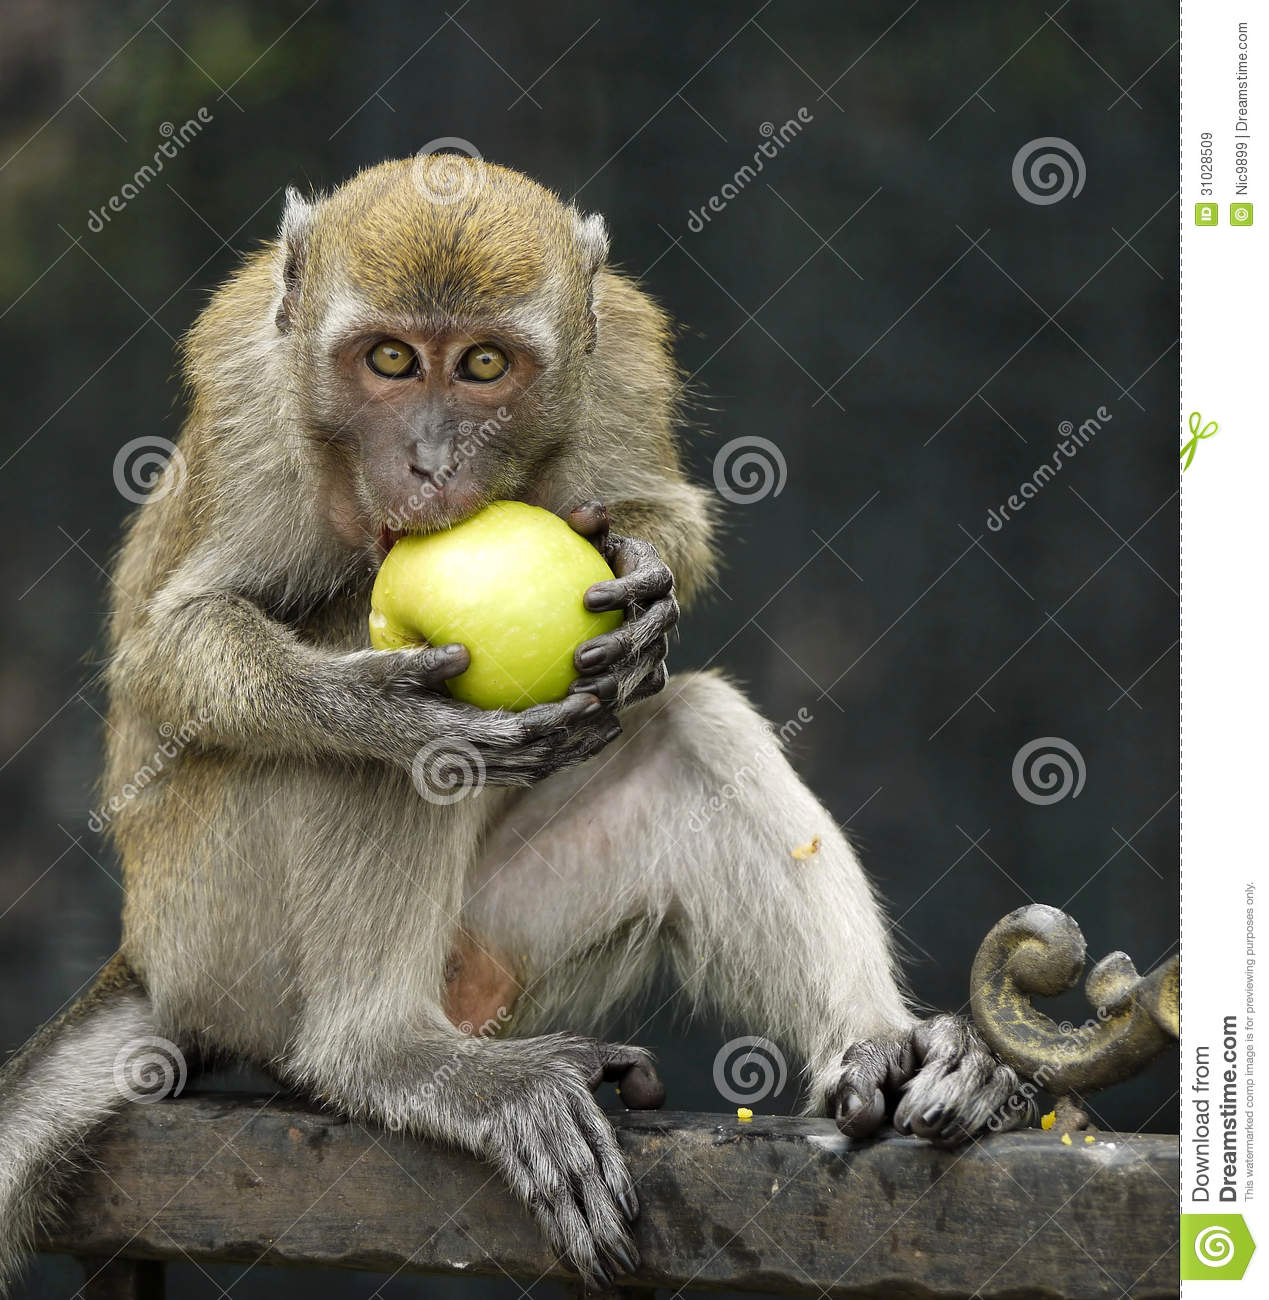 Monkey Eating An Apple Royalty Free Stock Images Image